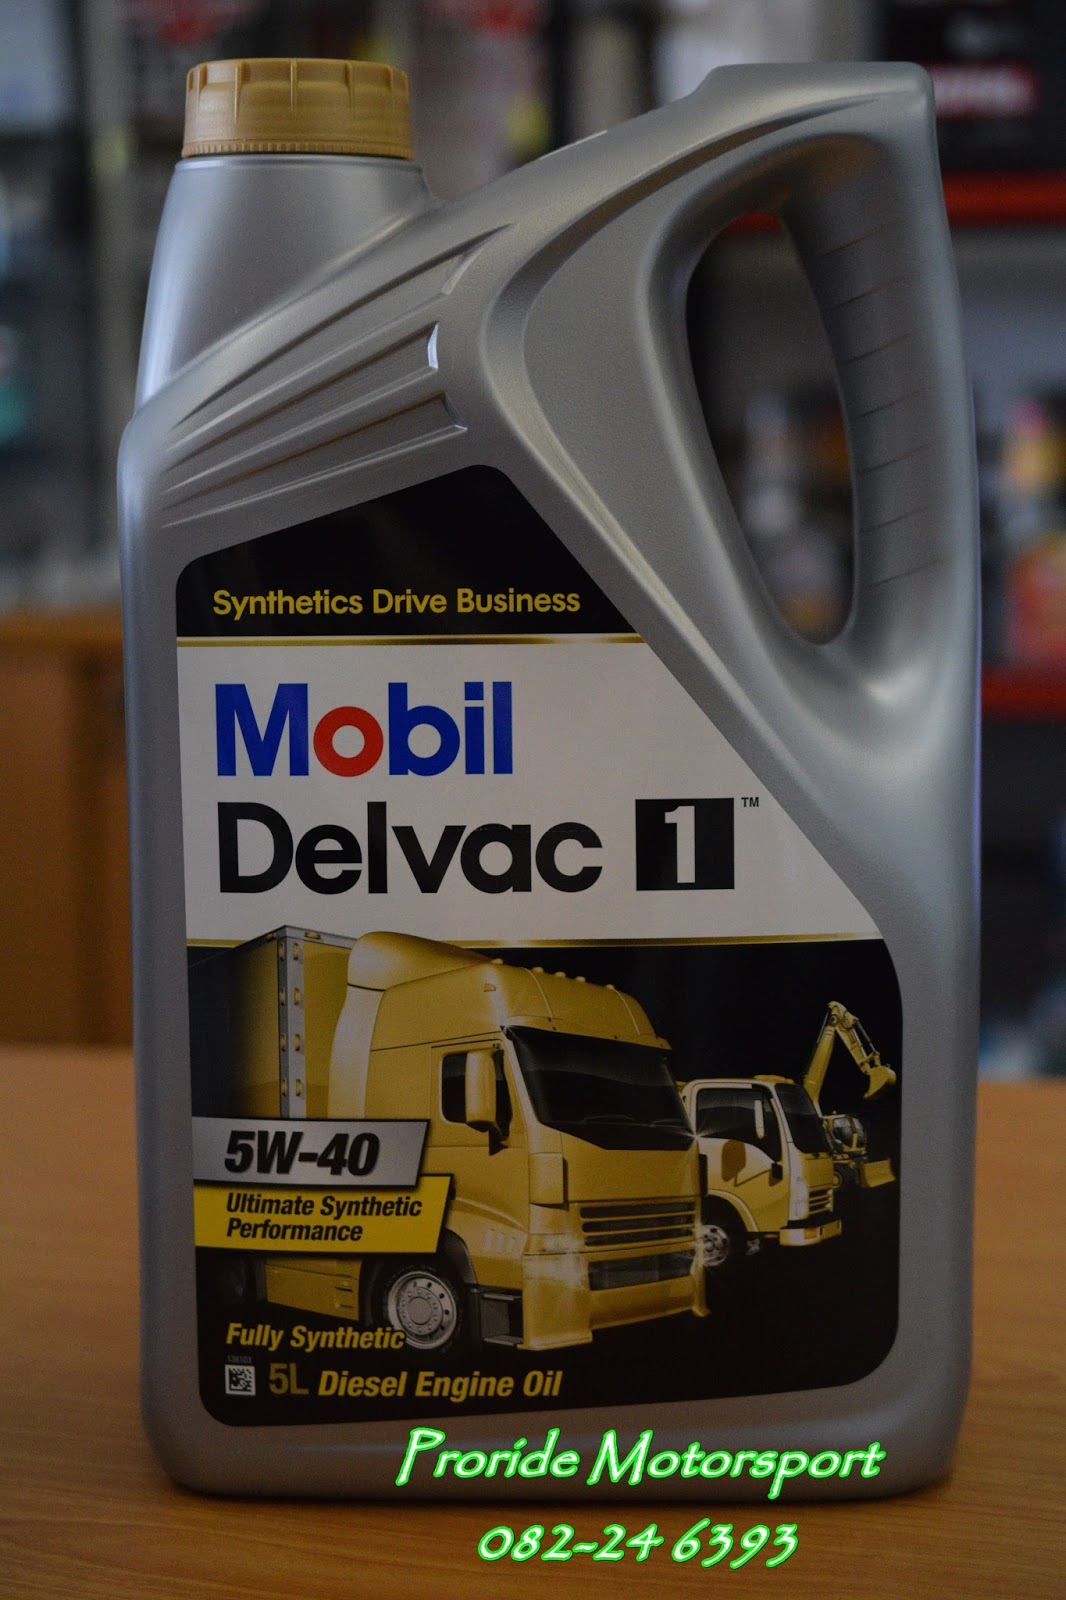 Pro ride motorsports mobil delvac 1 5w 40 high for Synthetic motor oil for diesel engines